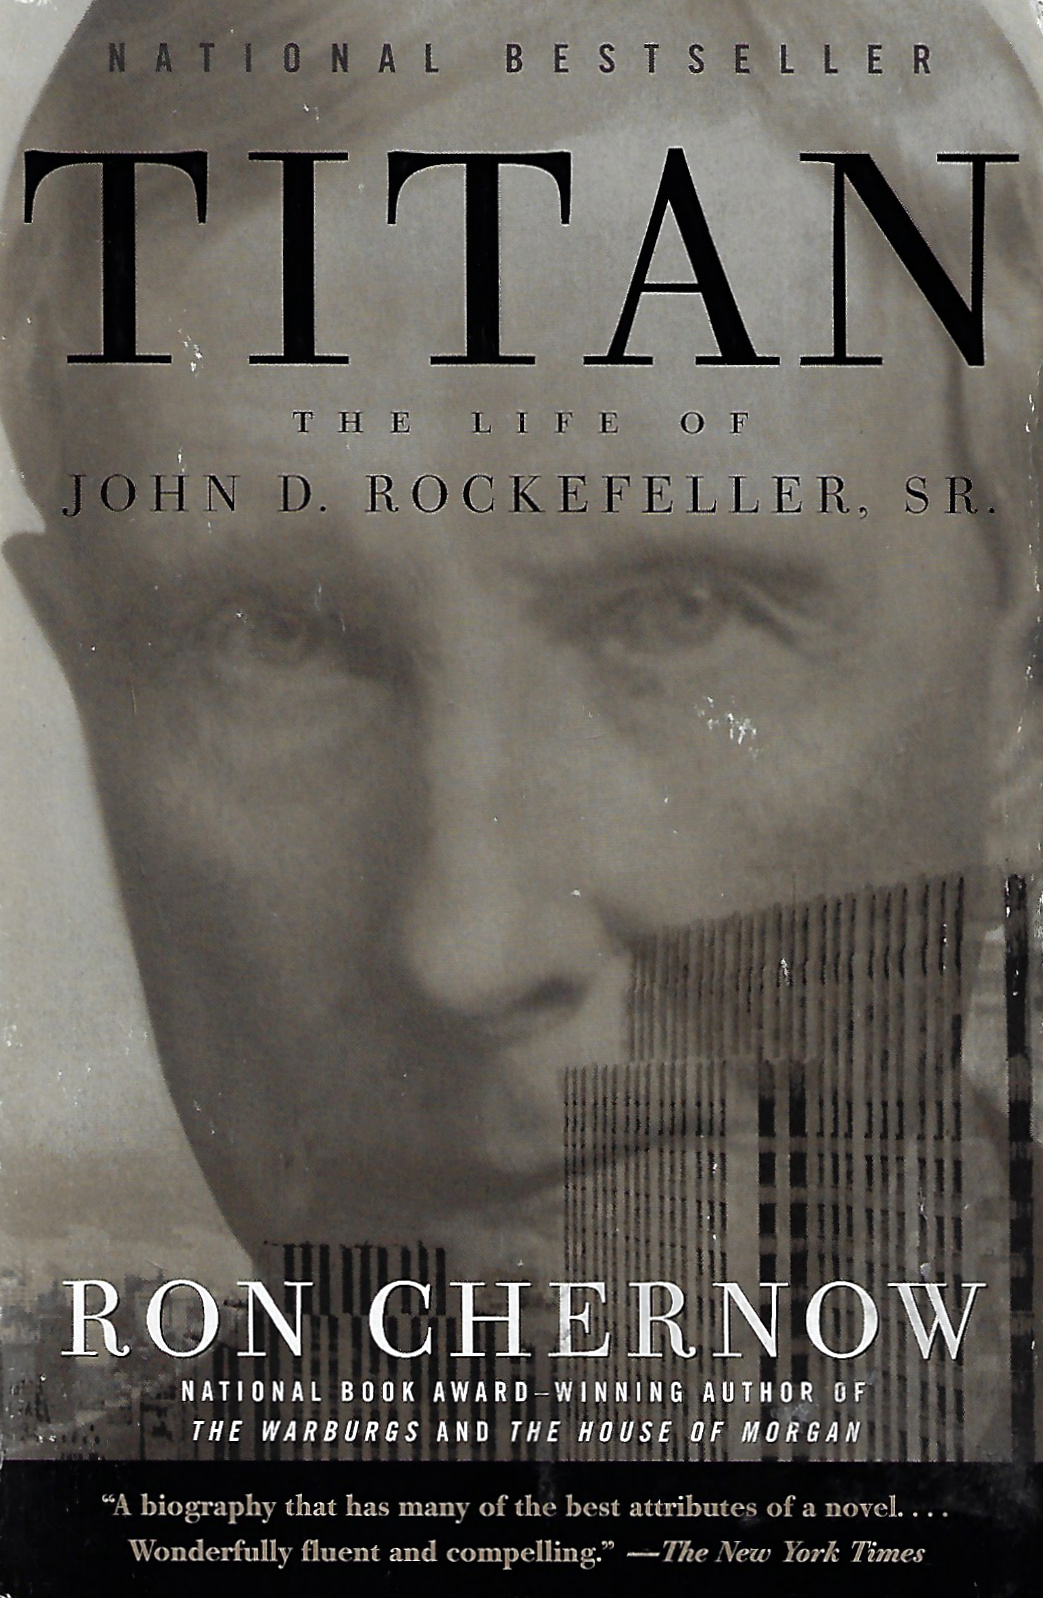 Titan: The Life of John D. Rockefeller, Sr.  by Ron Chernow, 1998